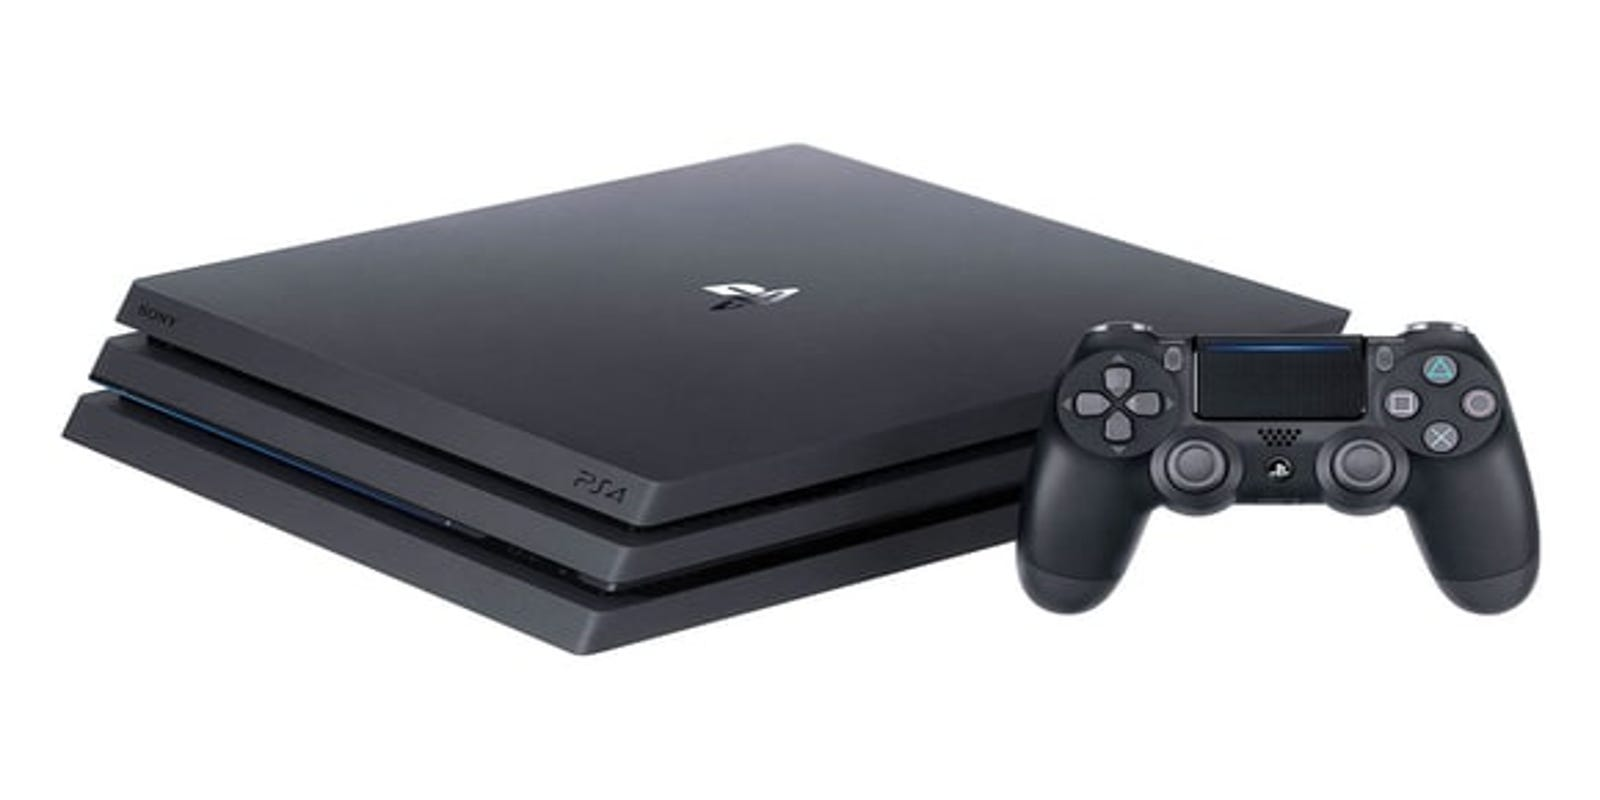 Upgrading to an Xbox Series X or PlayStation 5? What to do with your old video game console